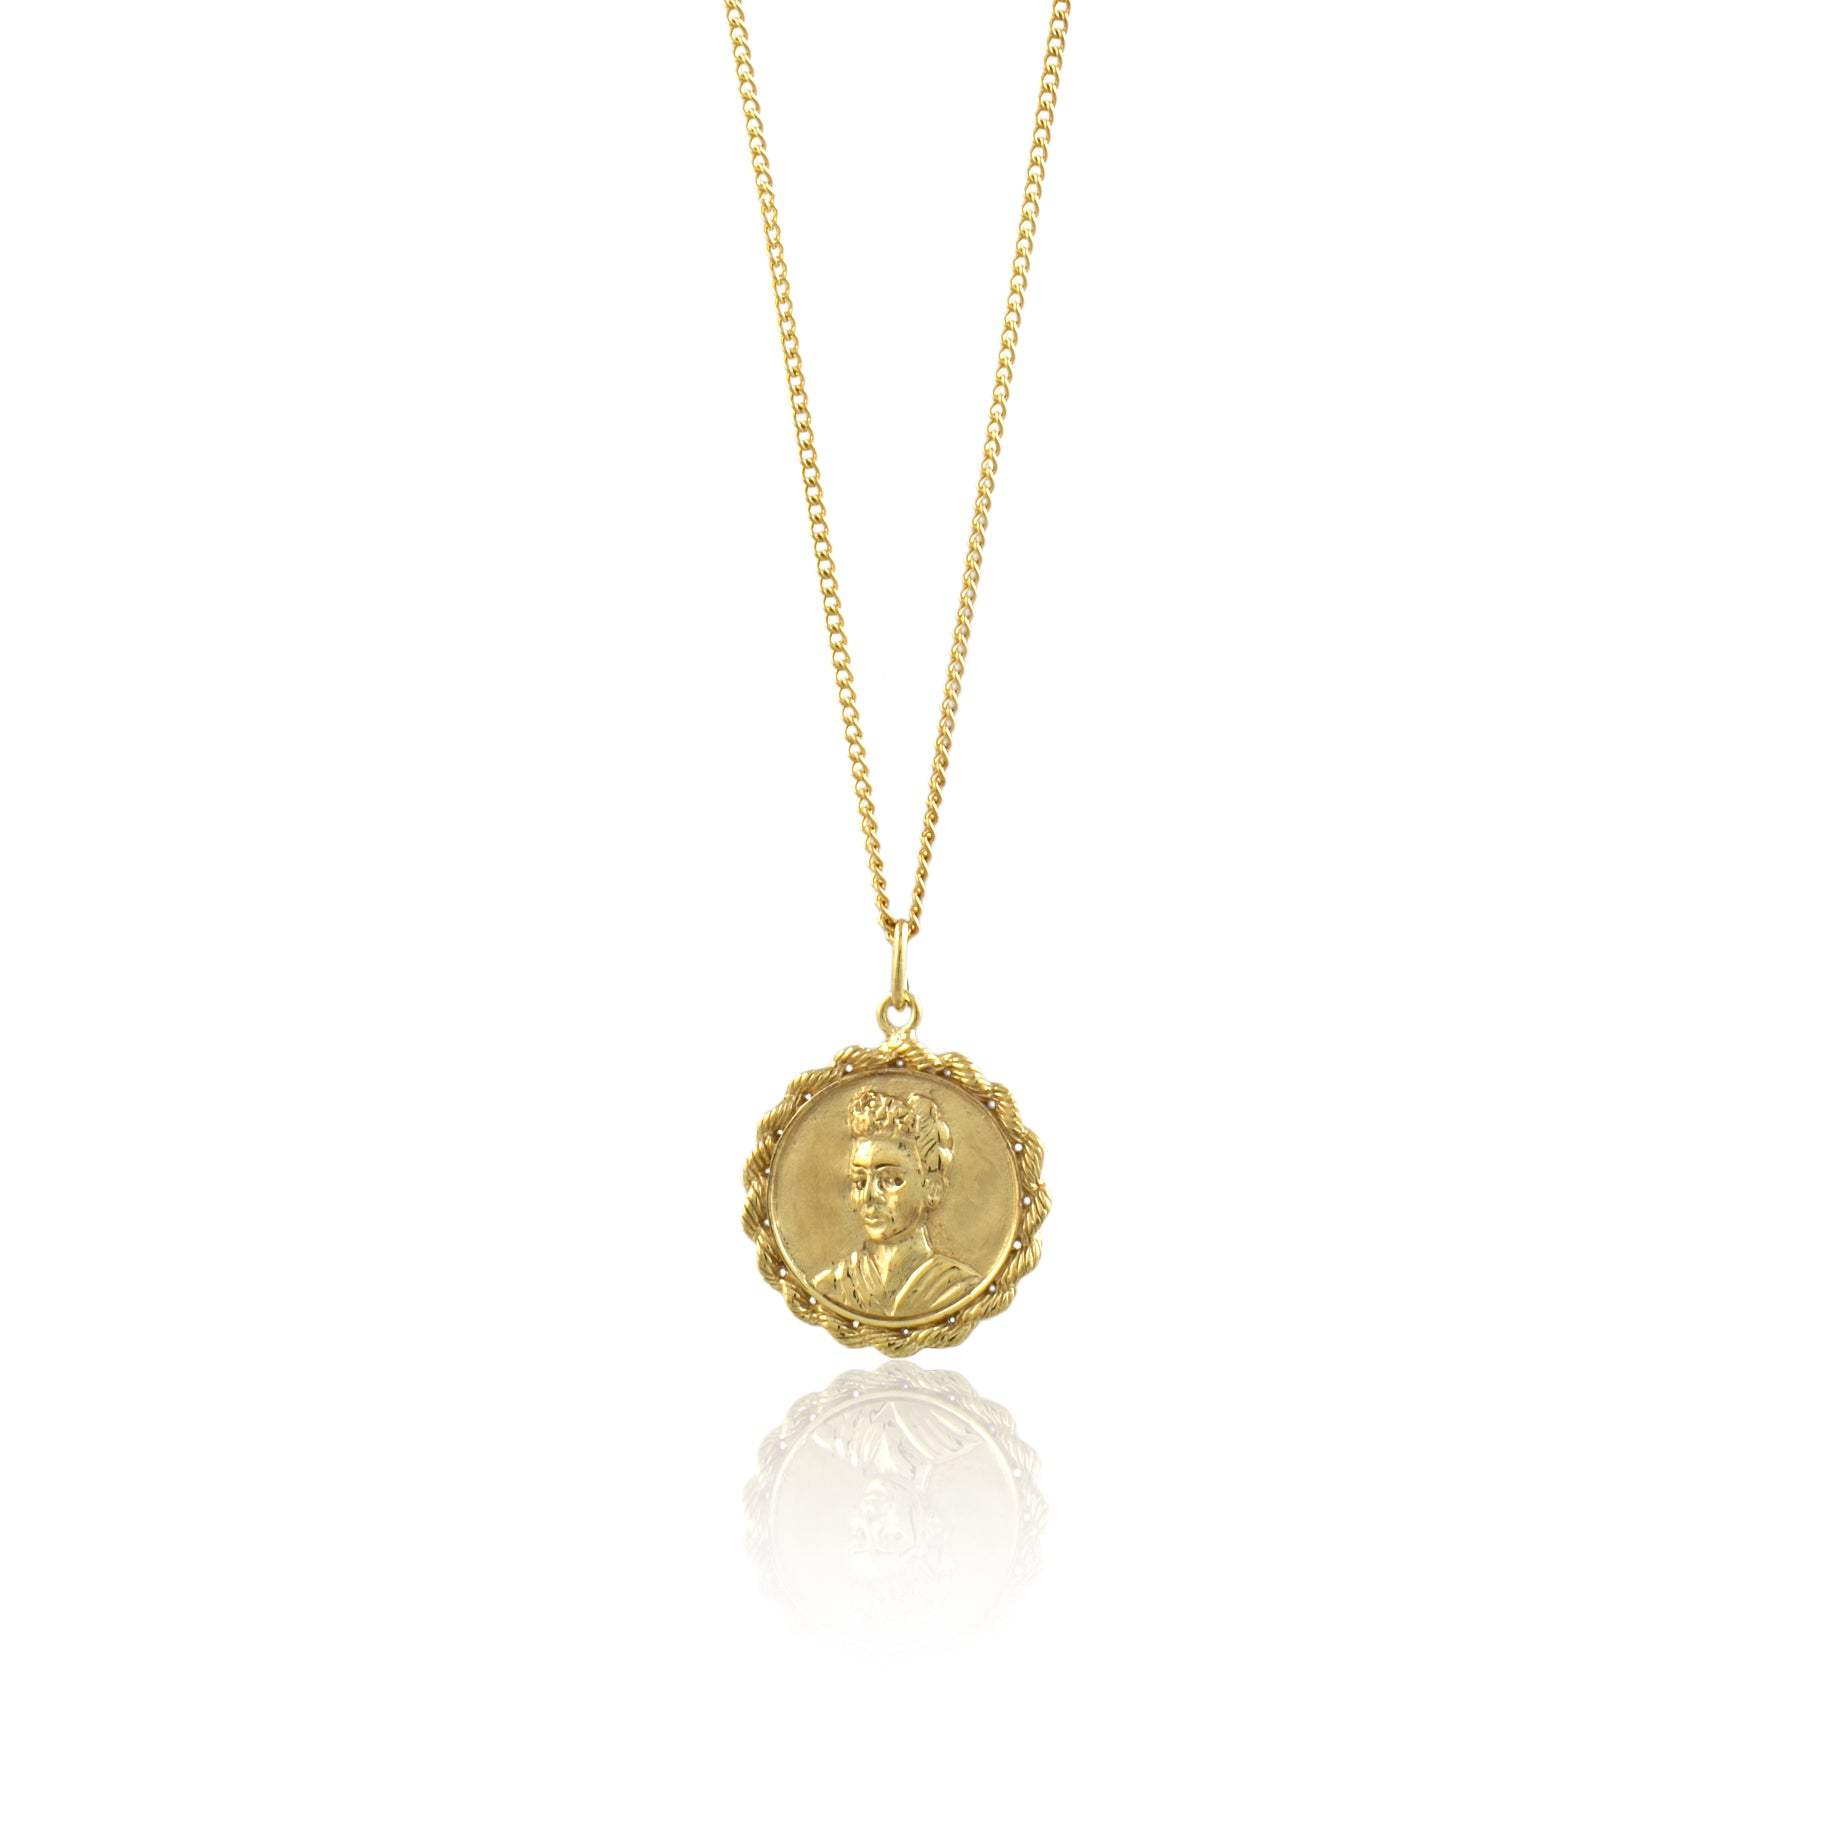 SOLID GOLD - MAGDALENA NECKLACE